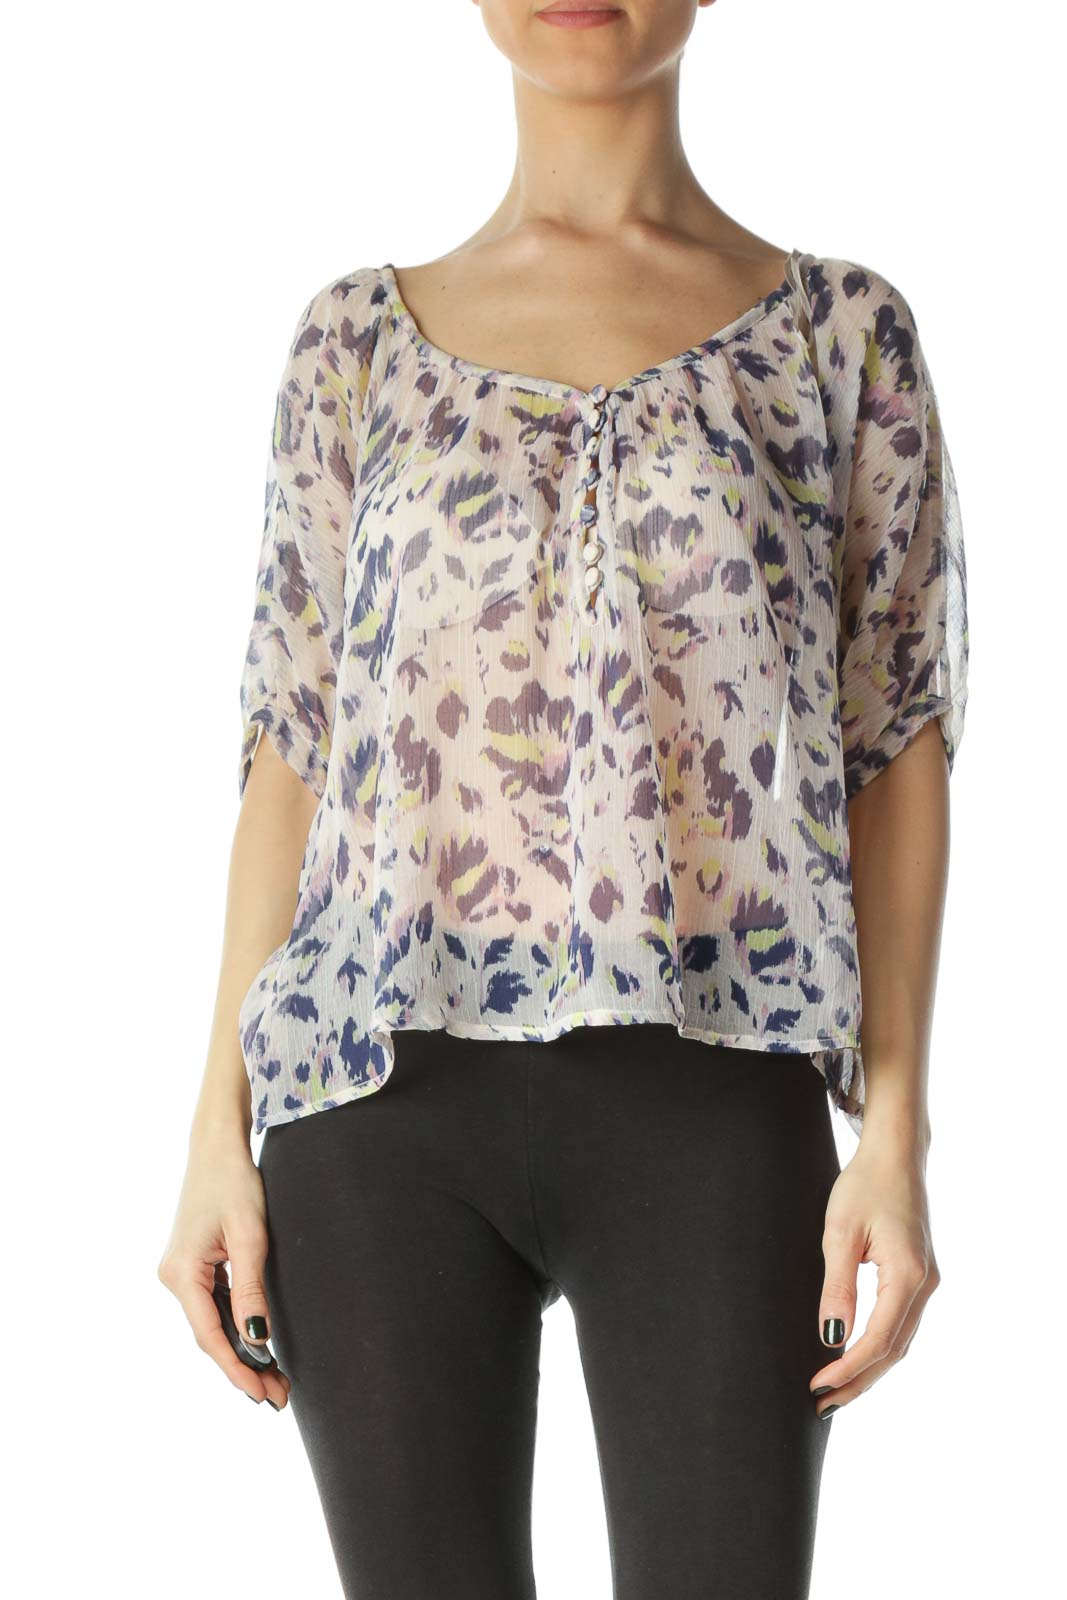 Multicolored Animal Print See-Through Short Blouse Front